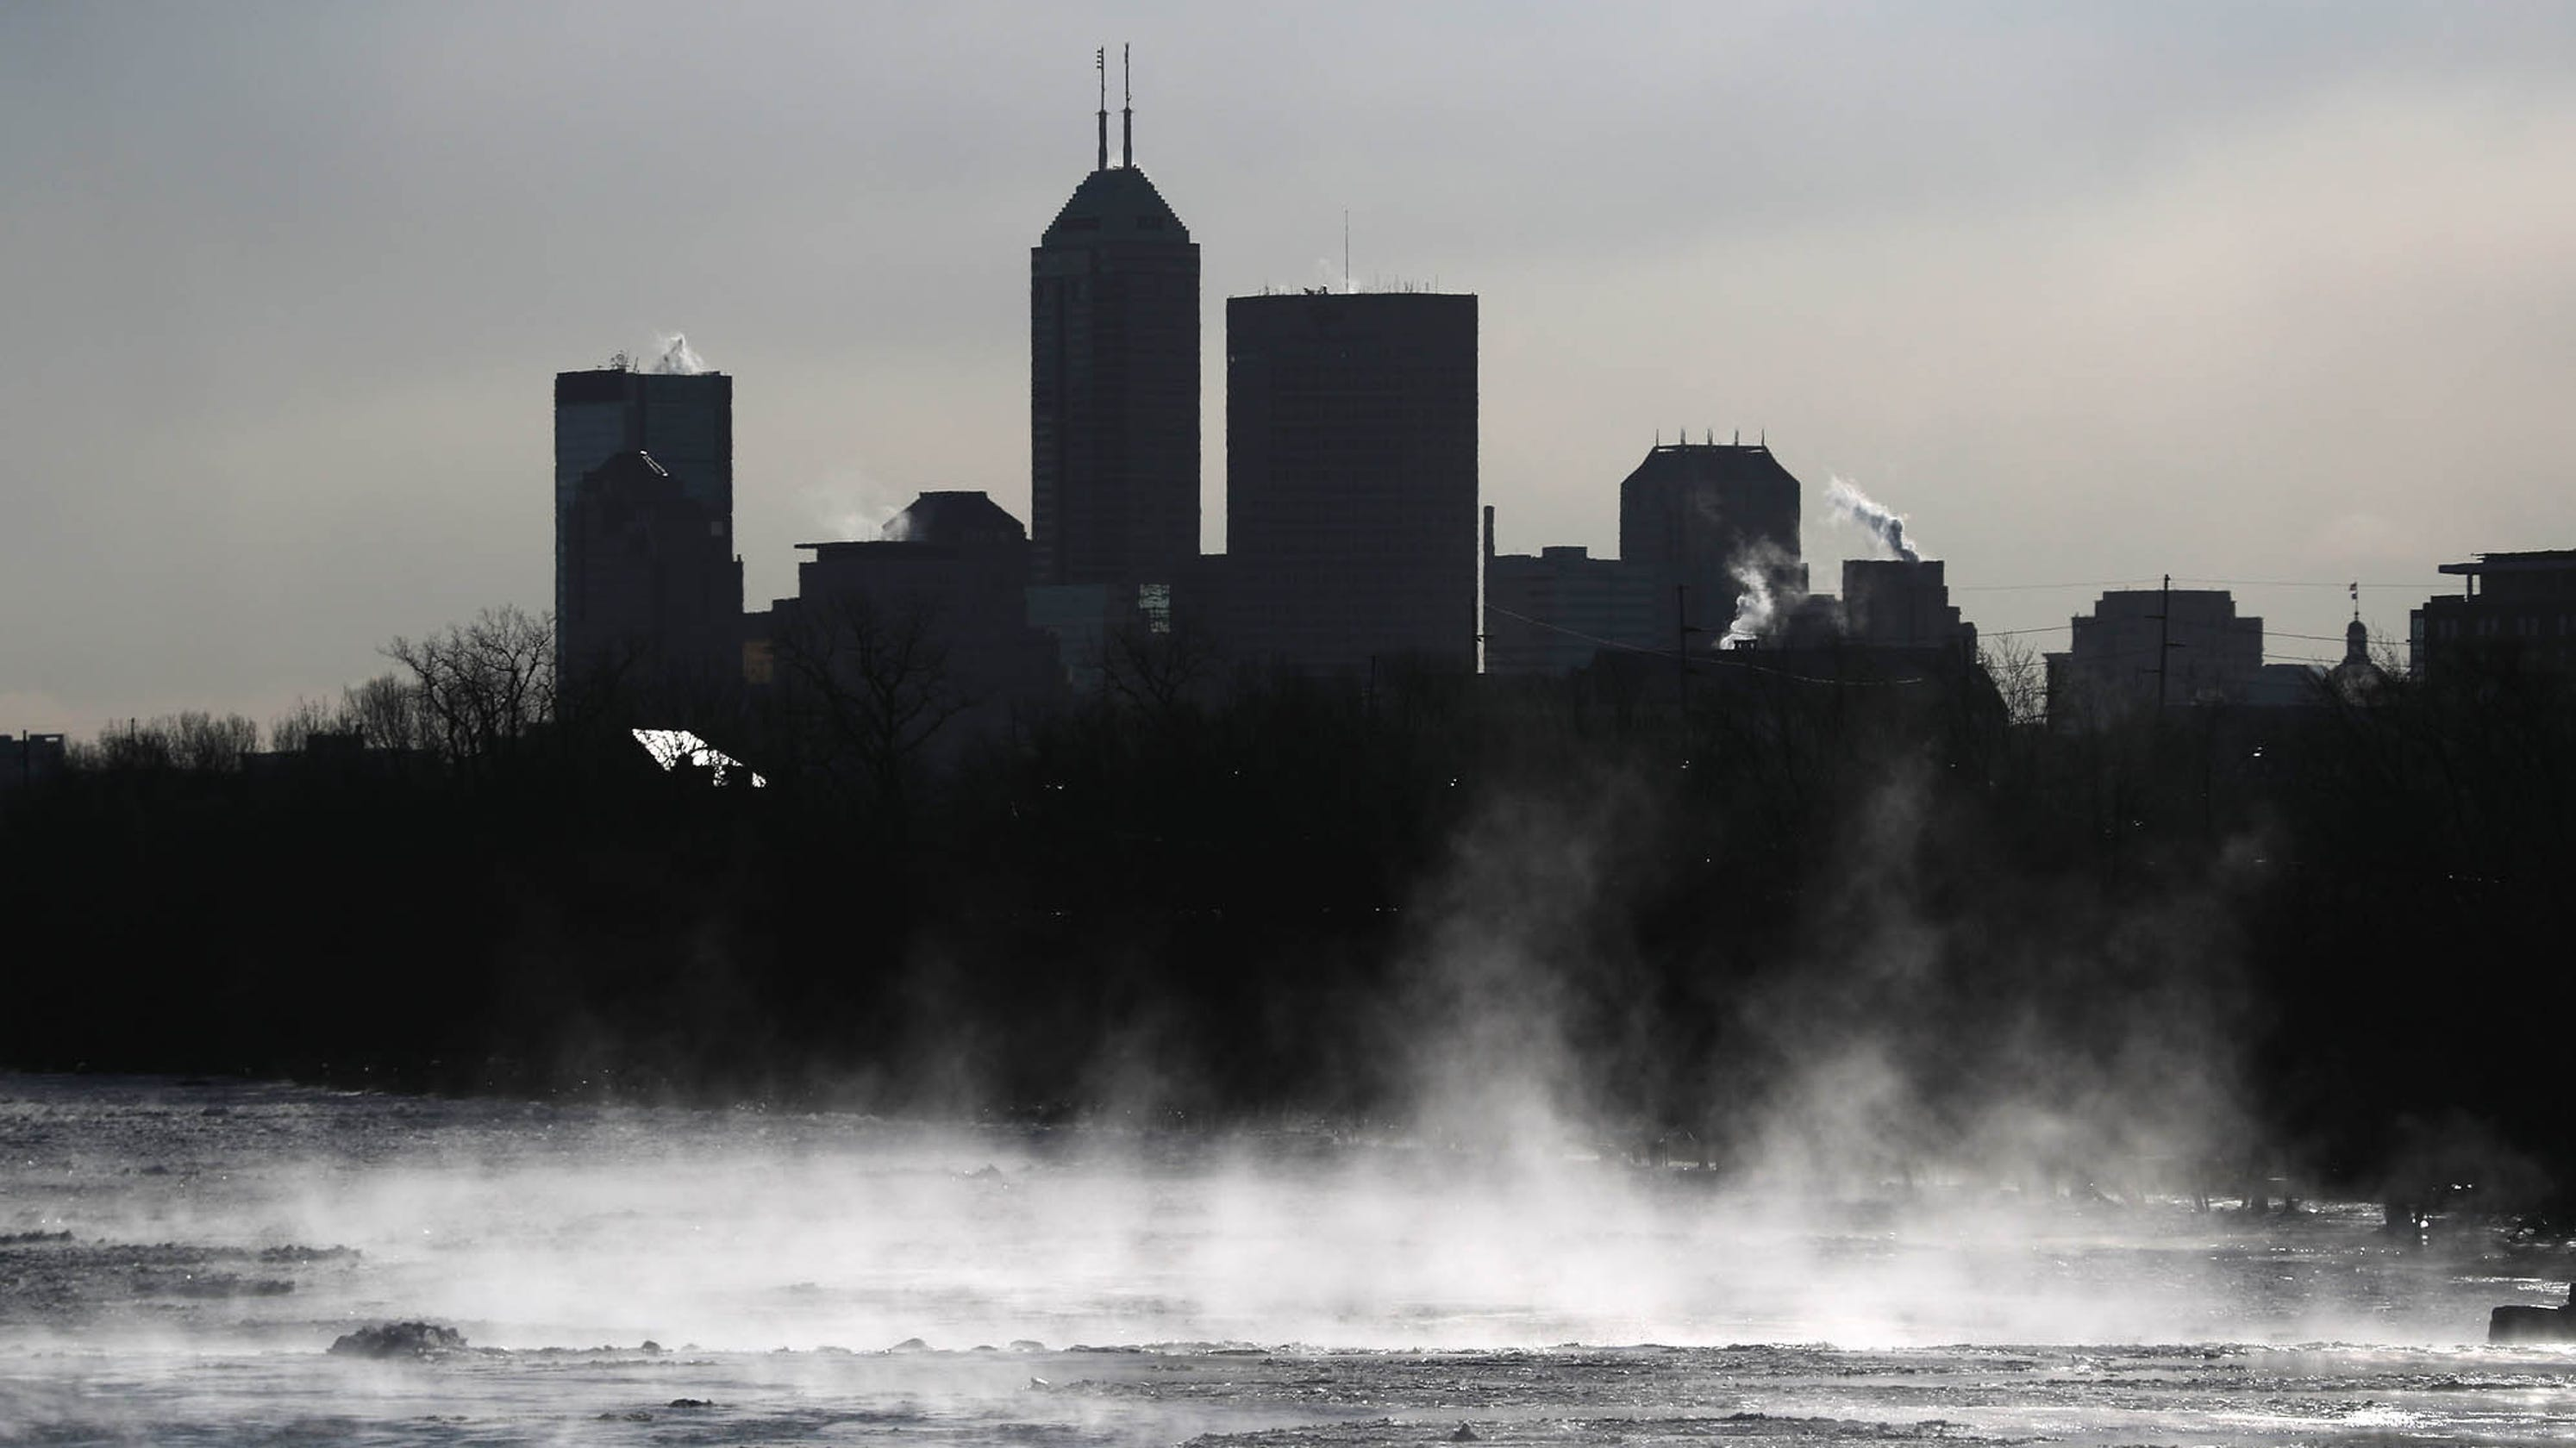 Cold Chicago, Midwest weather: US freeze from polar vortex ...